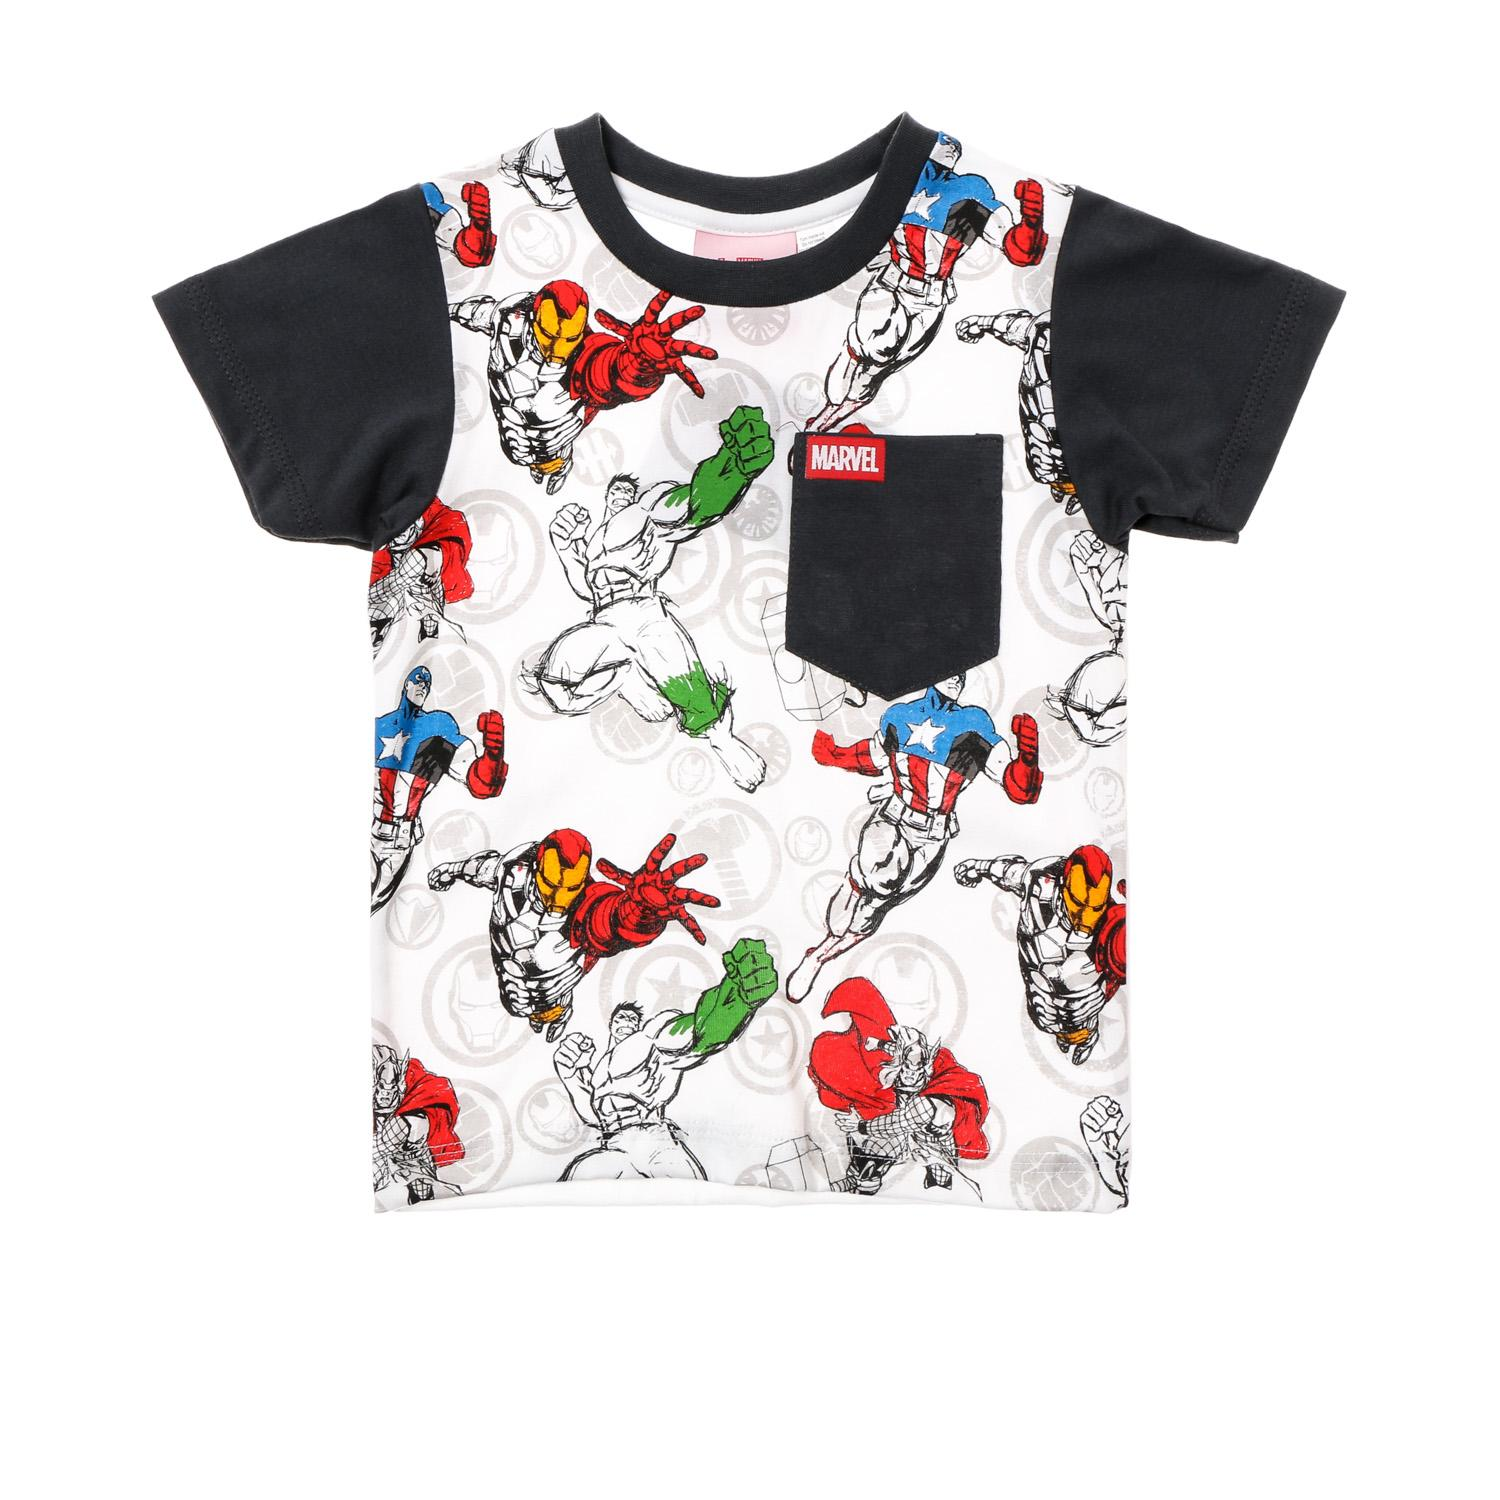 8458db2d Boys Tank Tops for sale - Tank Tops for Baby Boys online brands ...